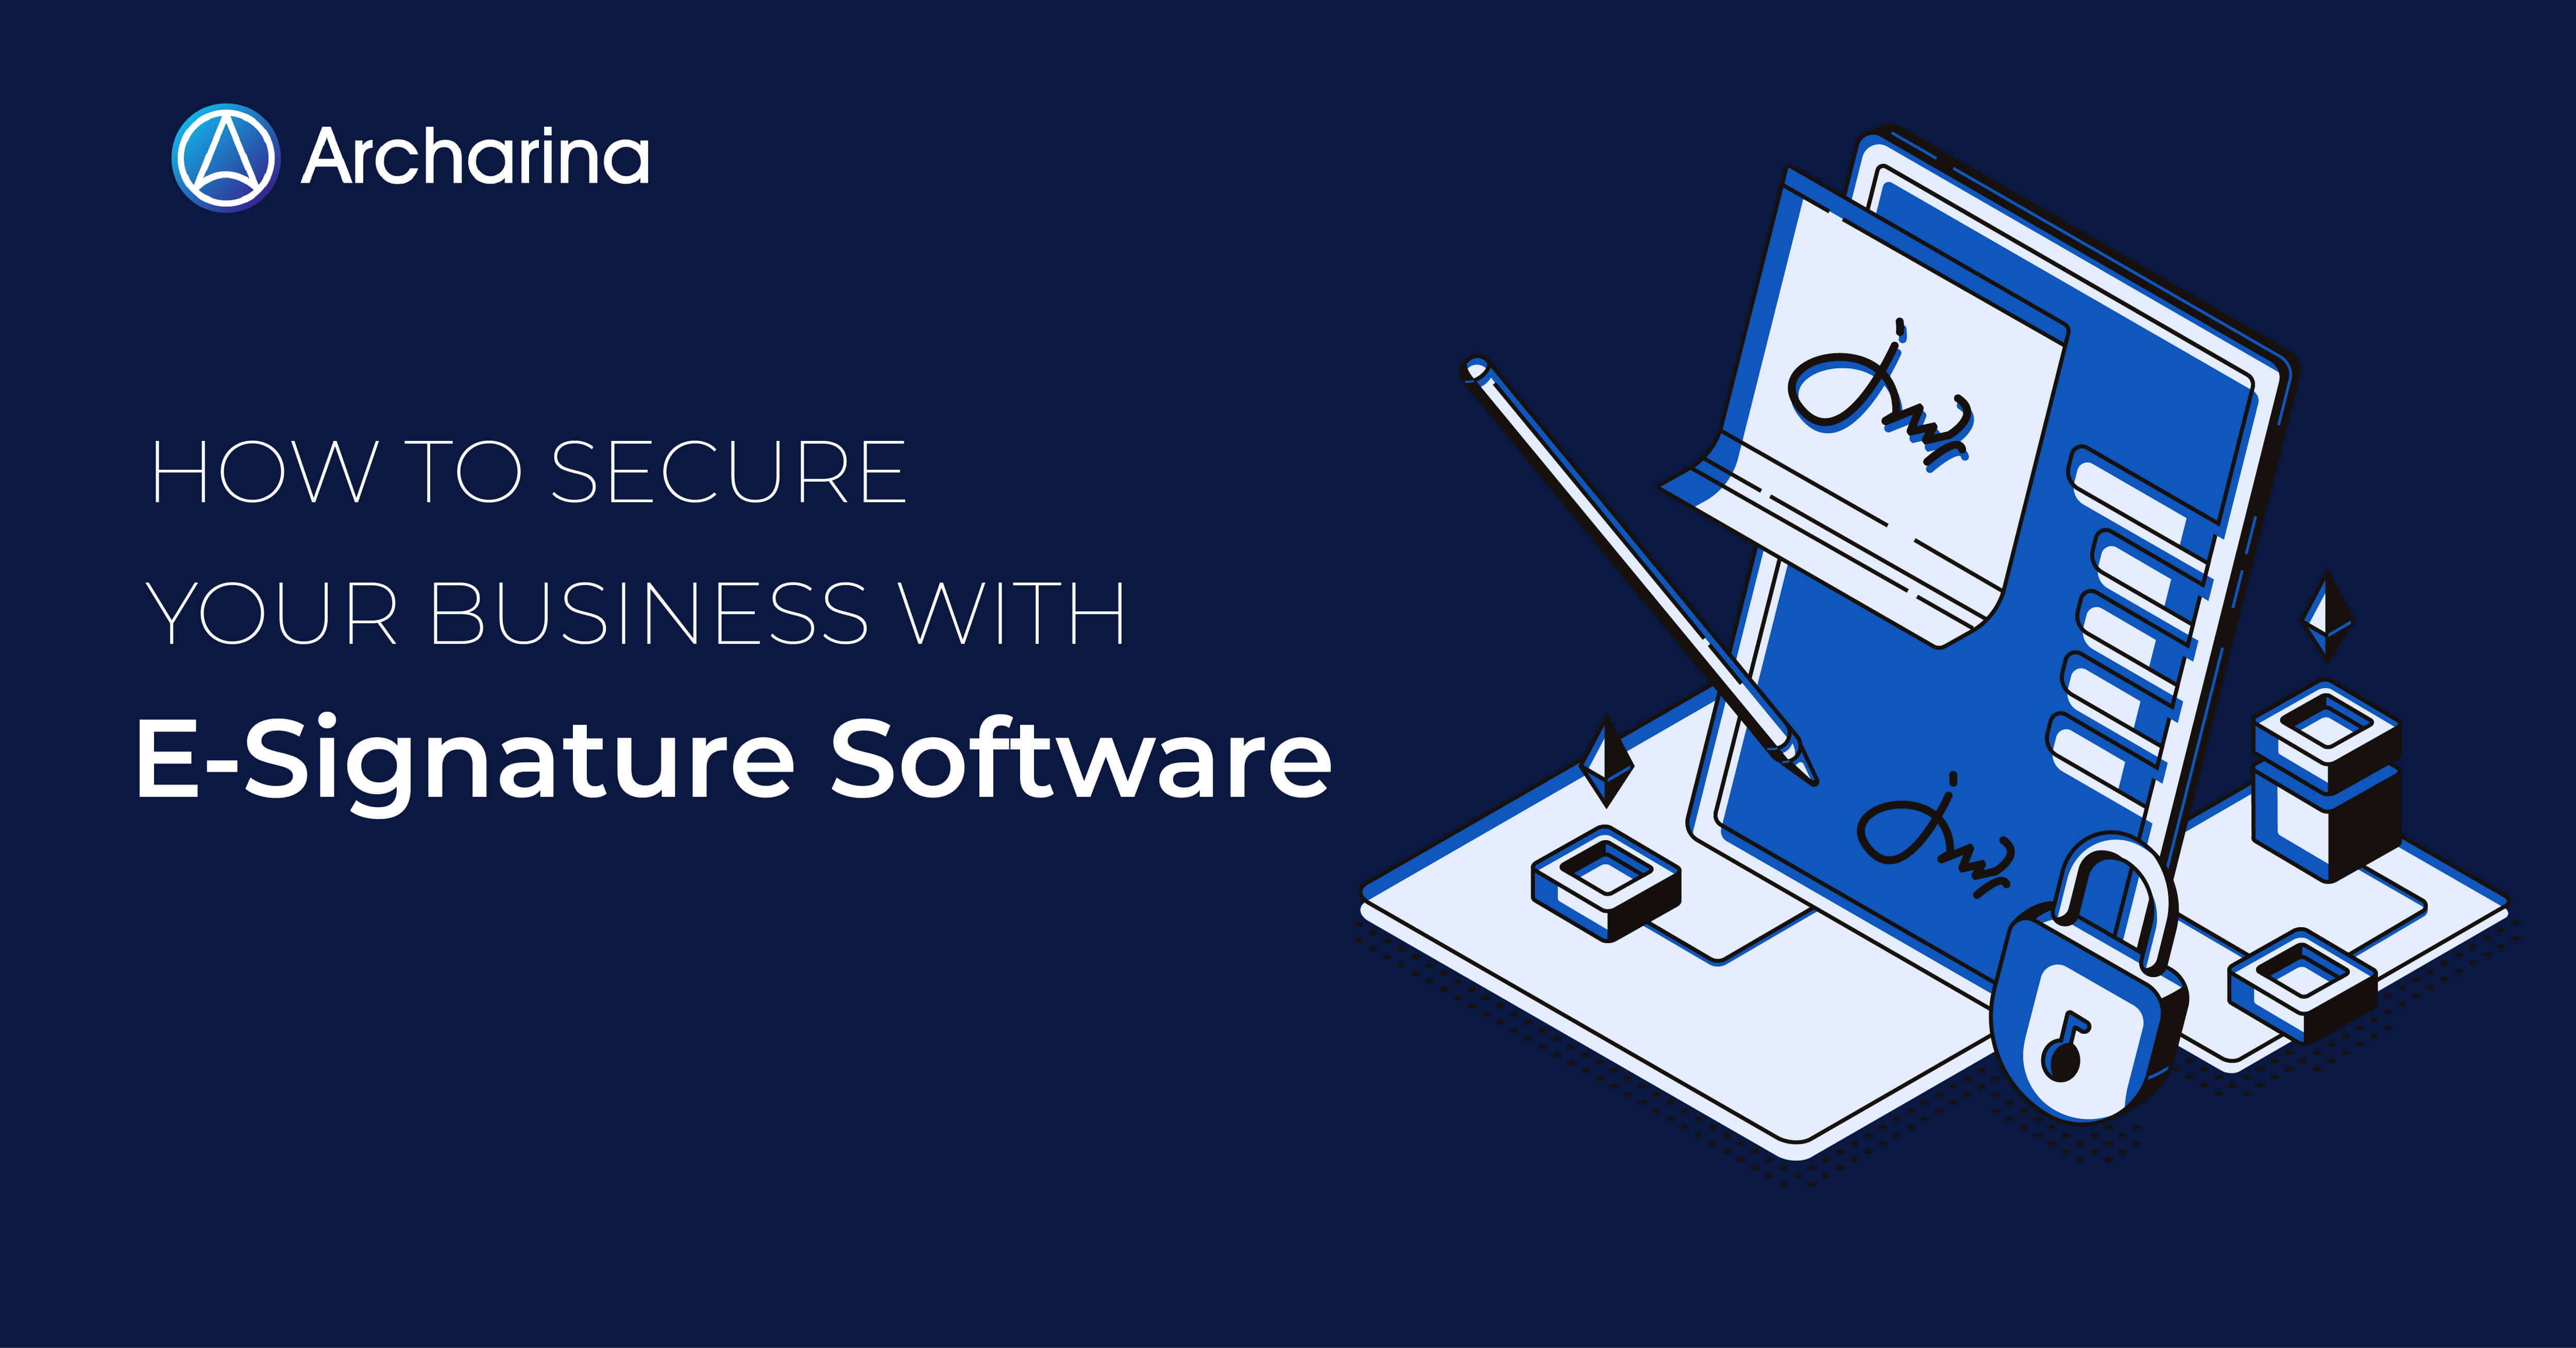 How to Secure Your Business with E-Signature Software